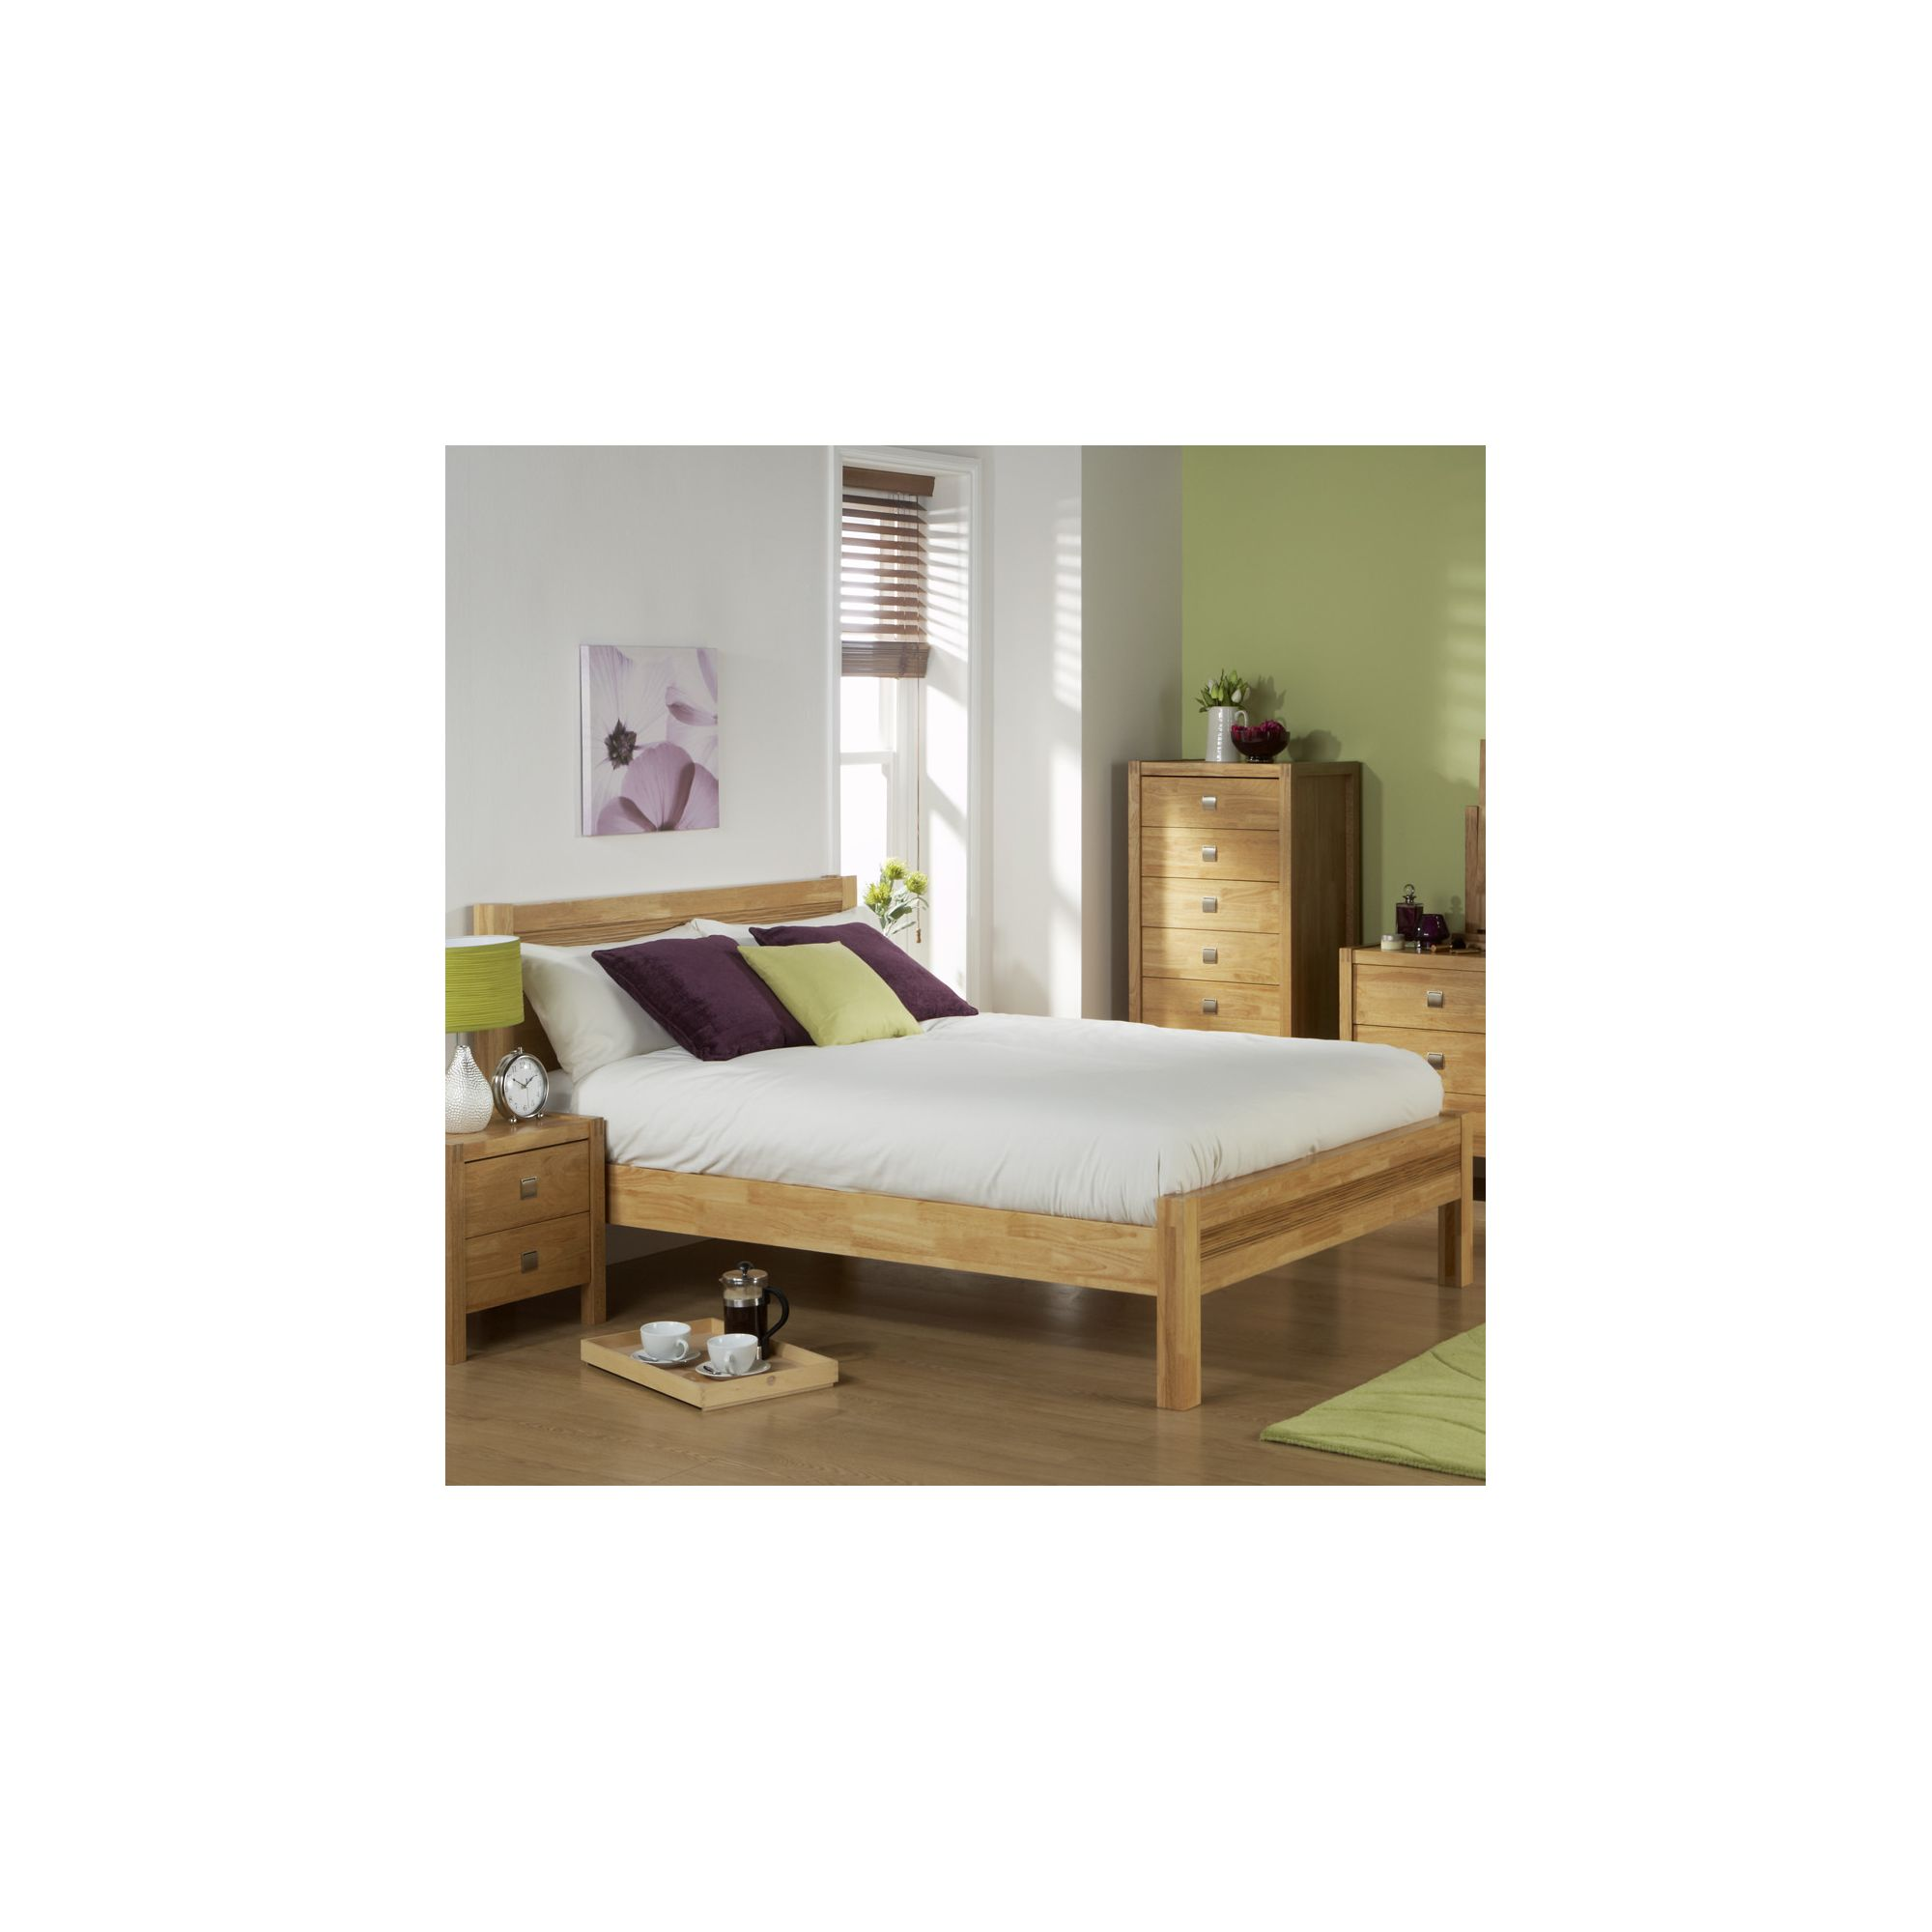 Elements Valencia Bed - King at Tesco Direct